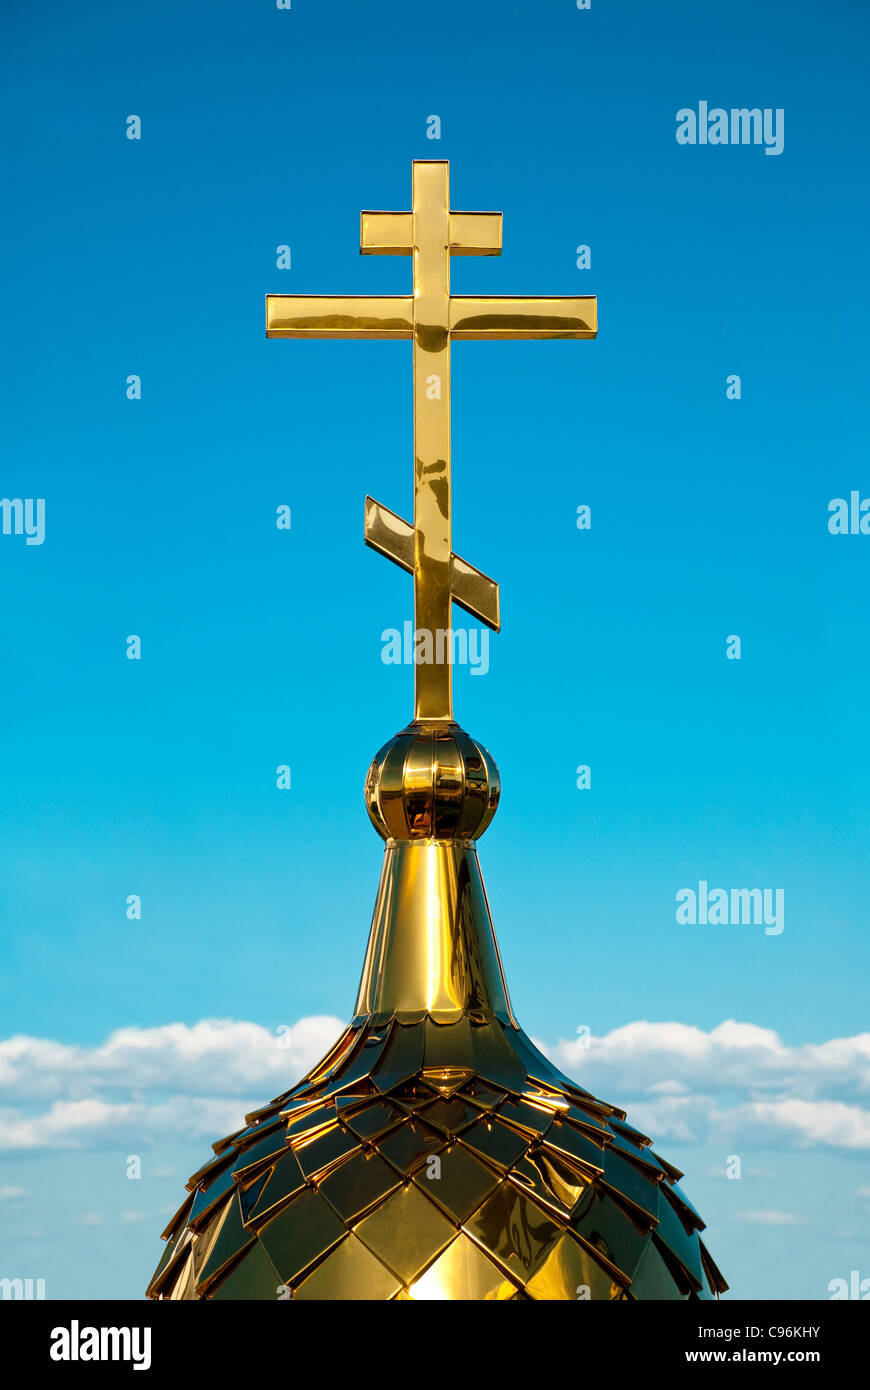 Russian orthodox cross. Christianity and all things related to it. - Stock Image